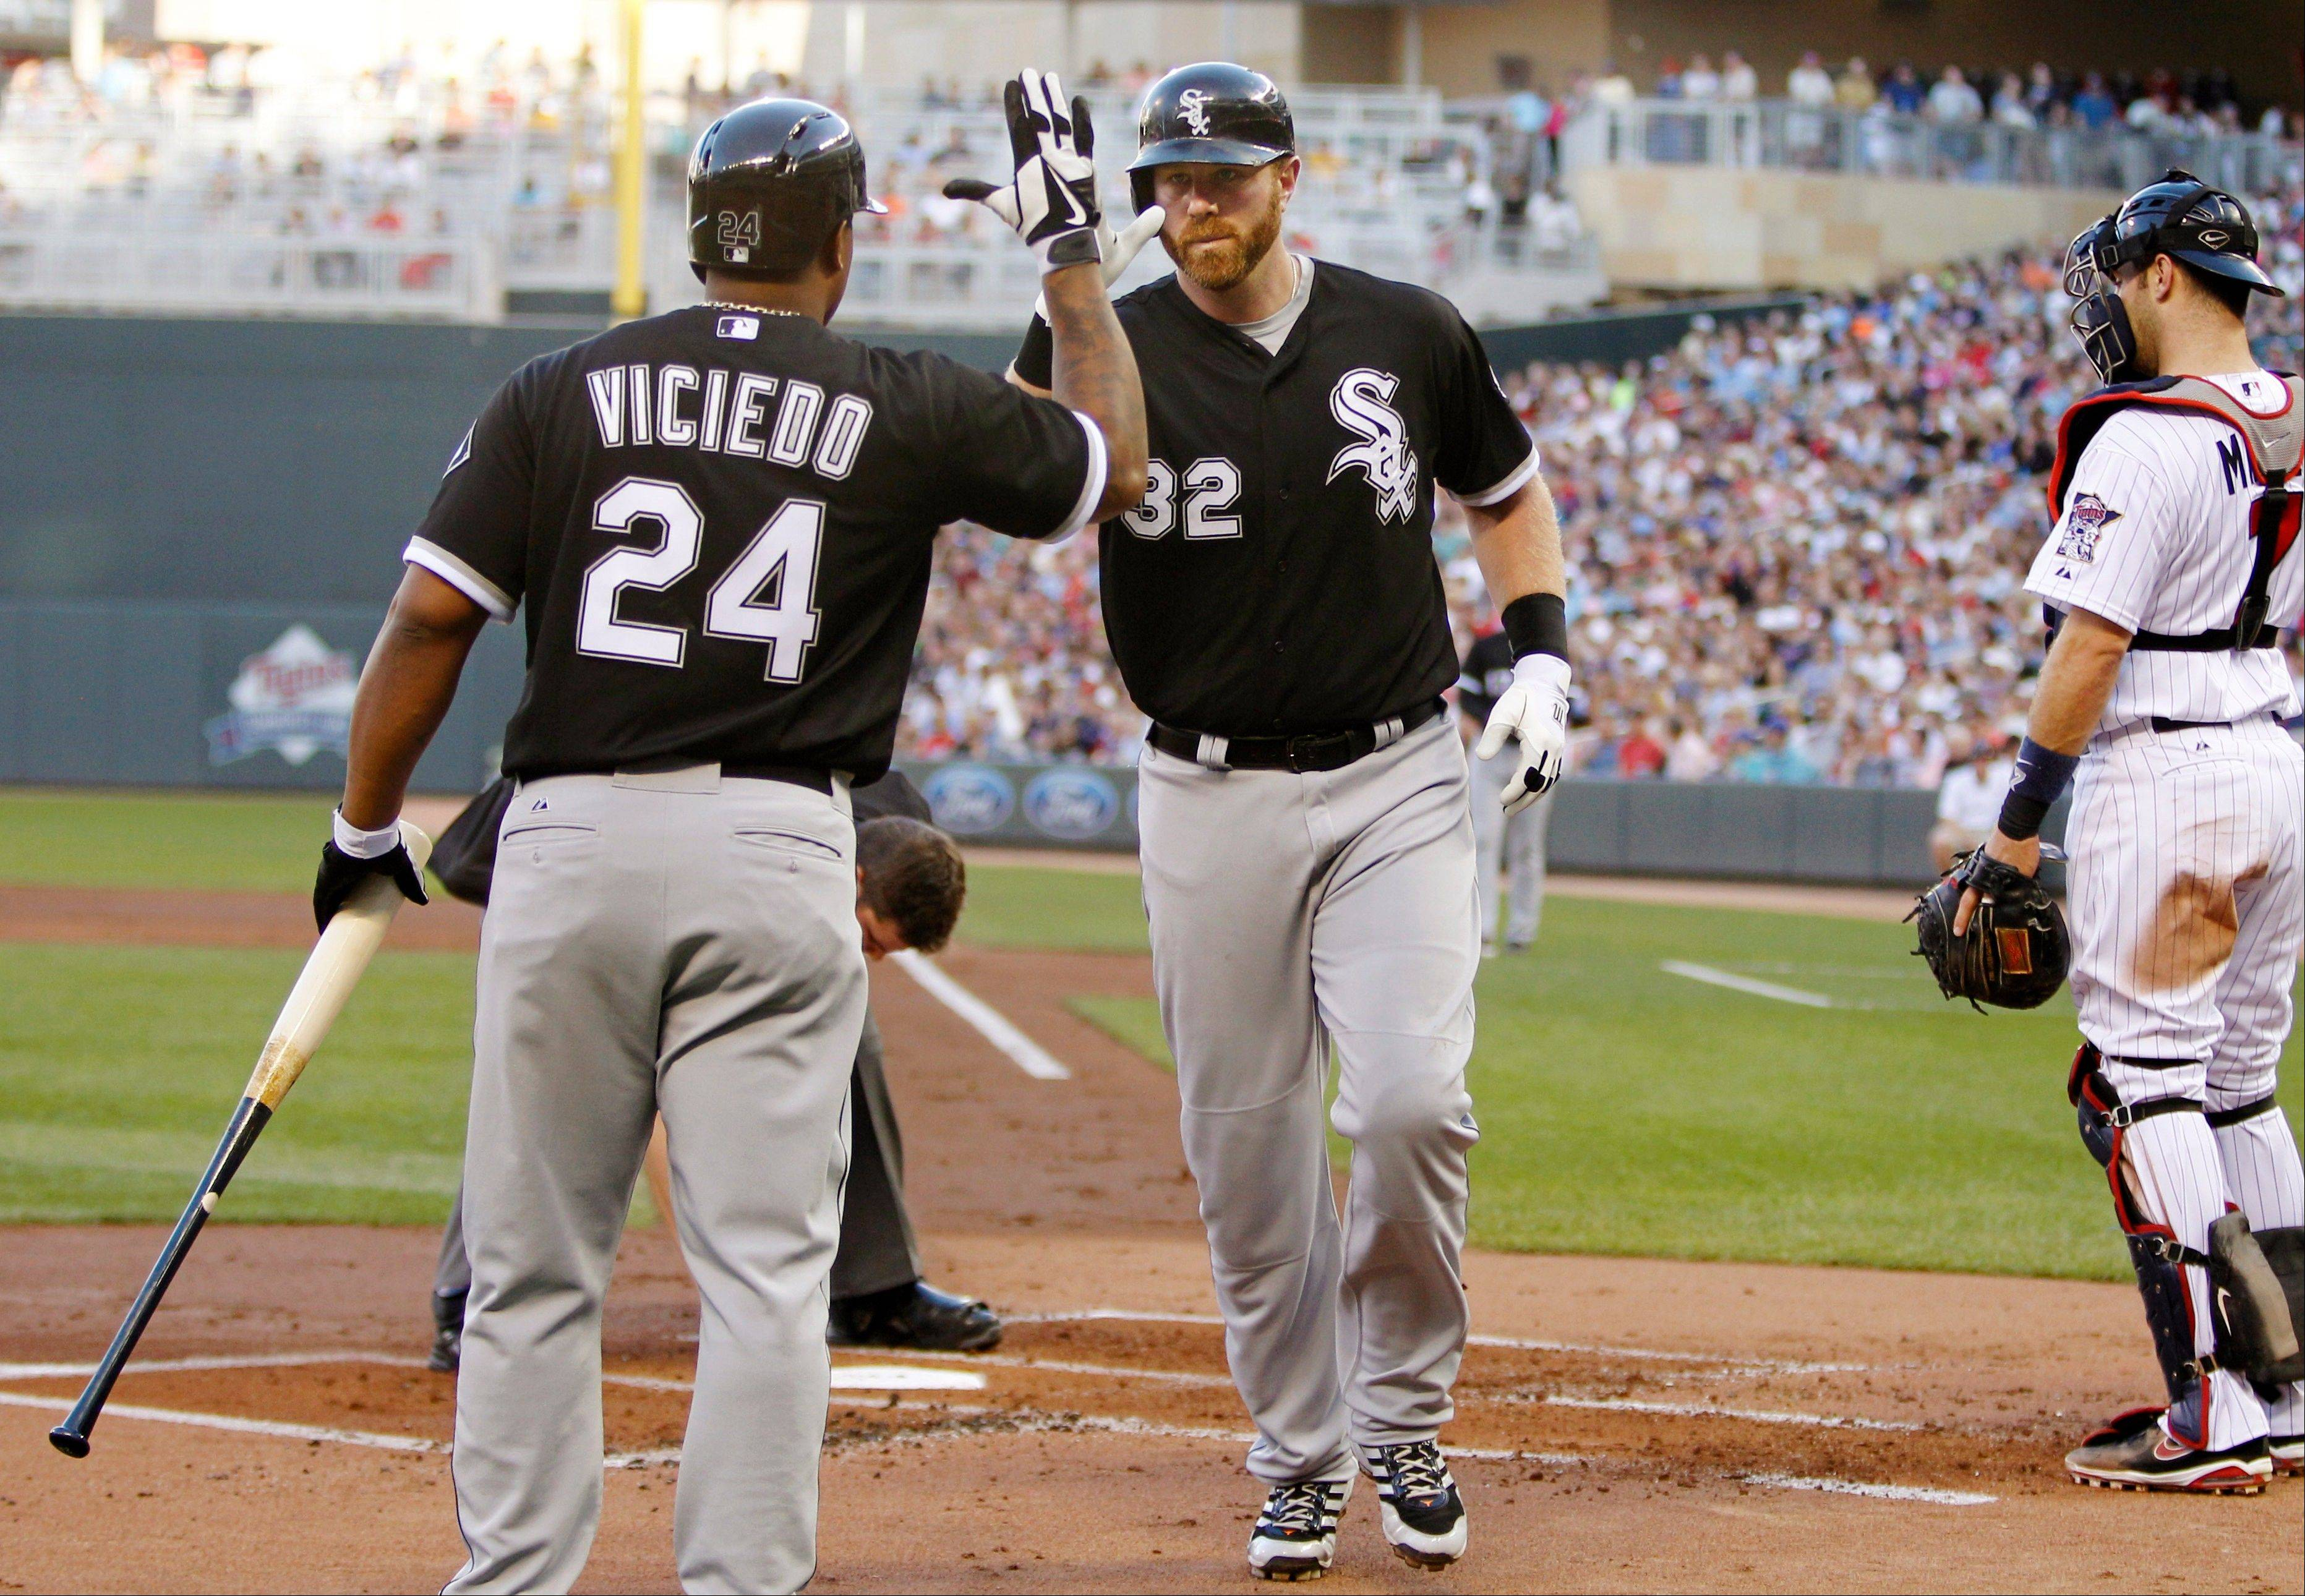 Adam Dunn (32) is congratulated by Dayan Viciedo (24) after hitting a solo home run against Minnesota Twins starting pitcher Kevin Correia during the second inning of a baseball game, Tuesday, May 14, 2013, in Minneapolis.